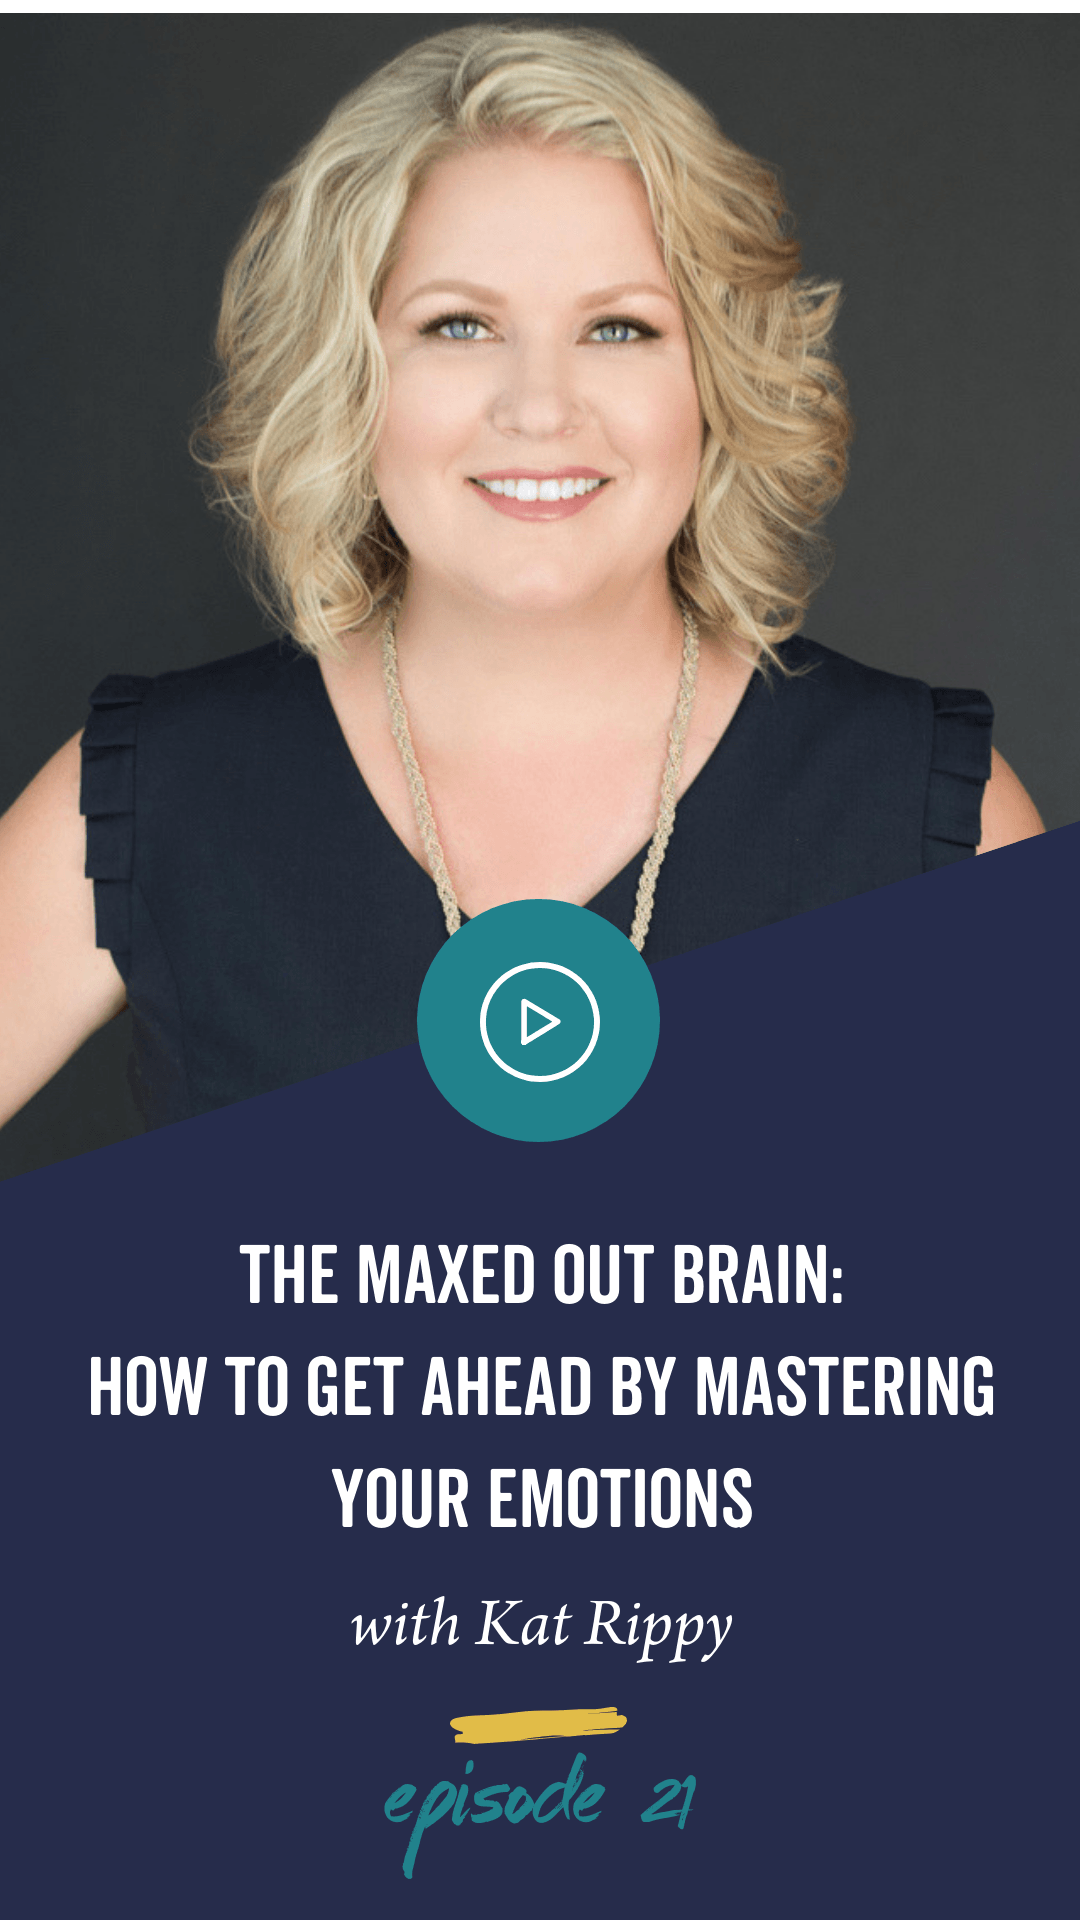 Episode 21: The Maxed out Brain: How to Get Ahead by Mastering Your Emotions